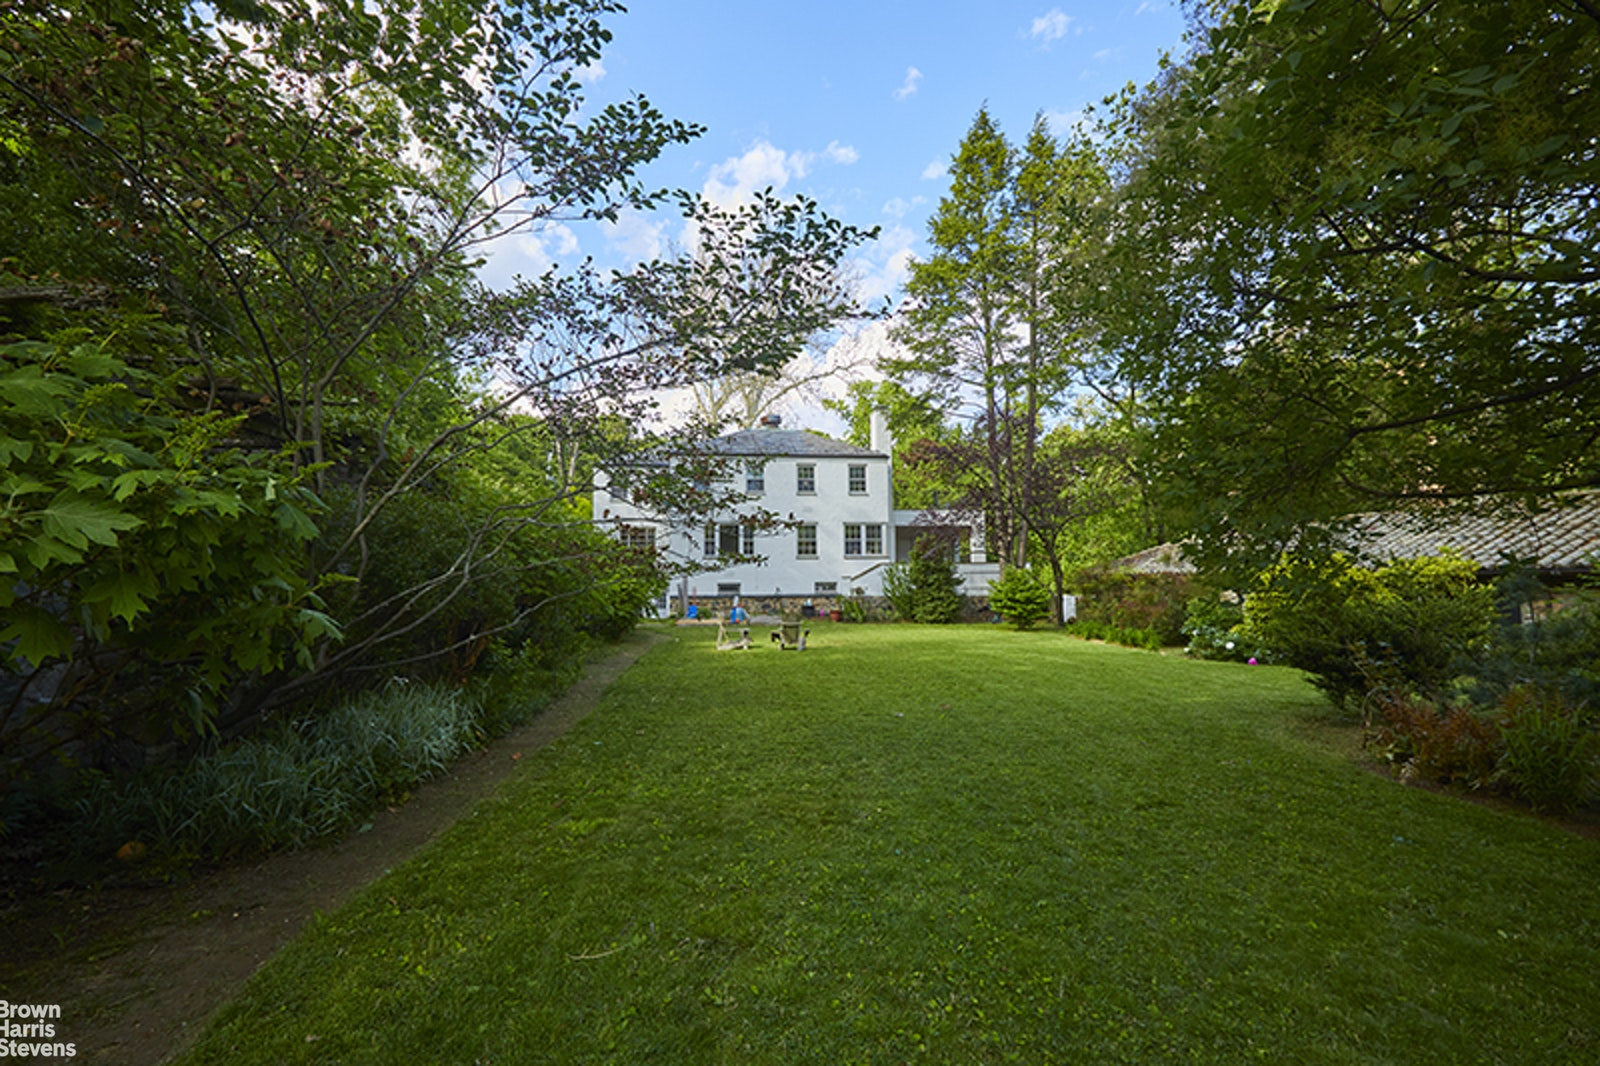 600 -4821 West 249th Stre, Riverdale, New York, 10471, $3,500,000, Property For Sale, Halstead Real Estate, Photo 19